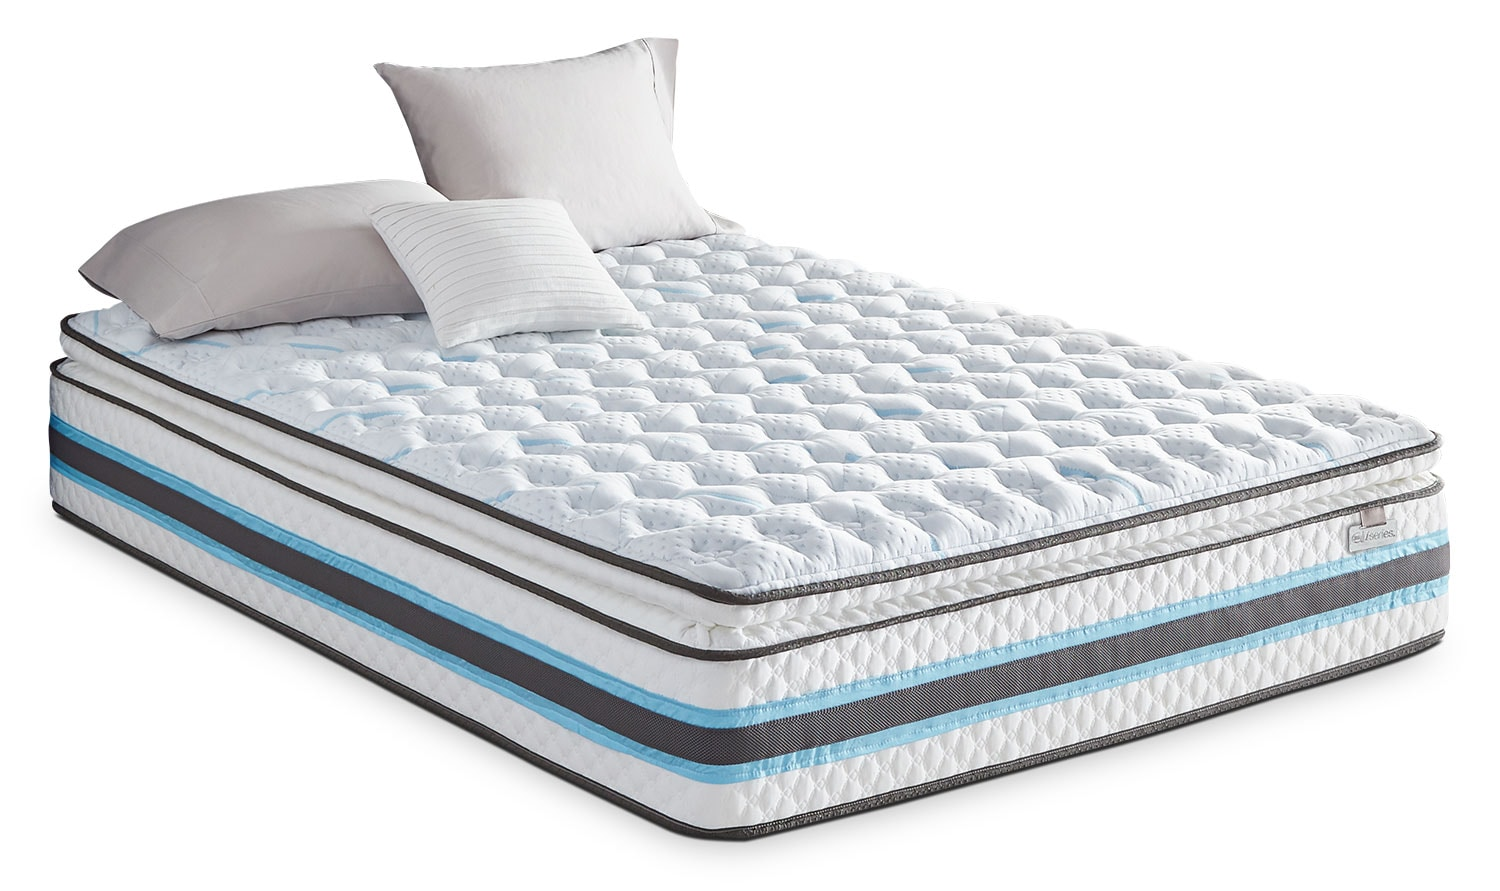 Serta iSeries® Breathtaking Pillow-Top Plush Full Mattress